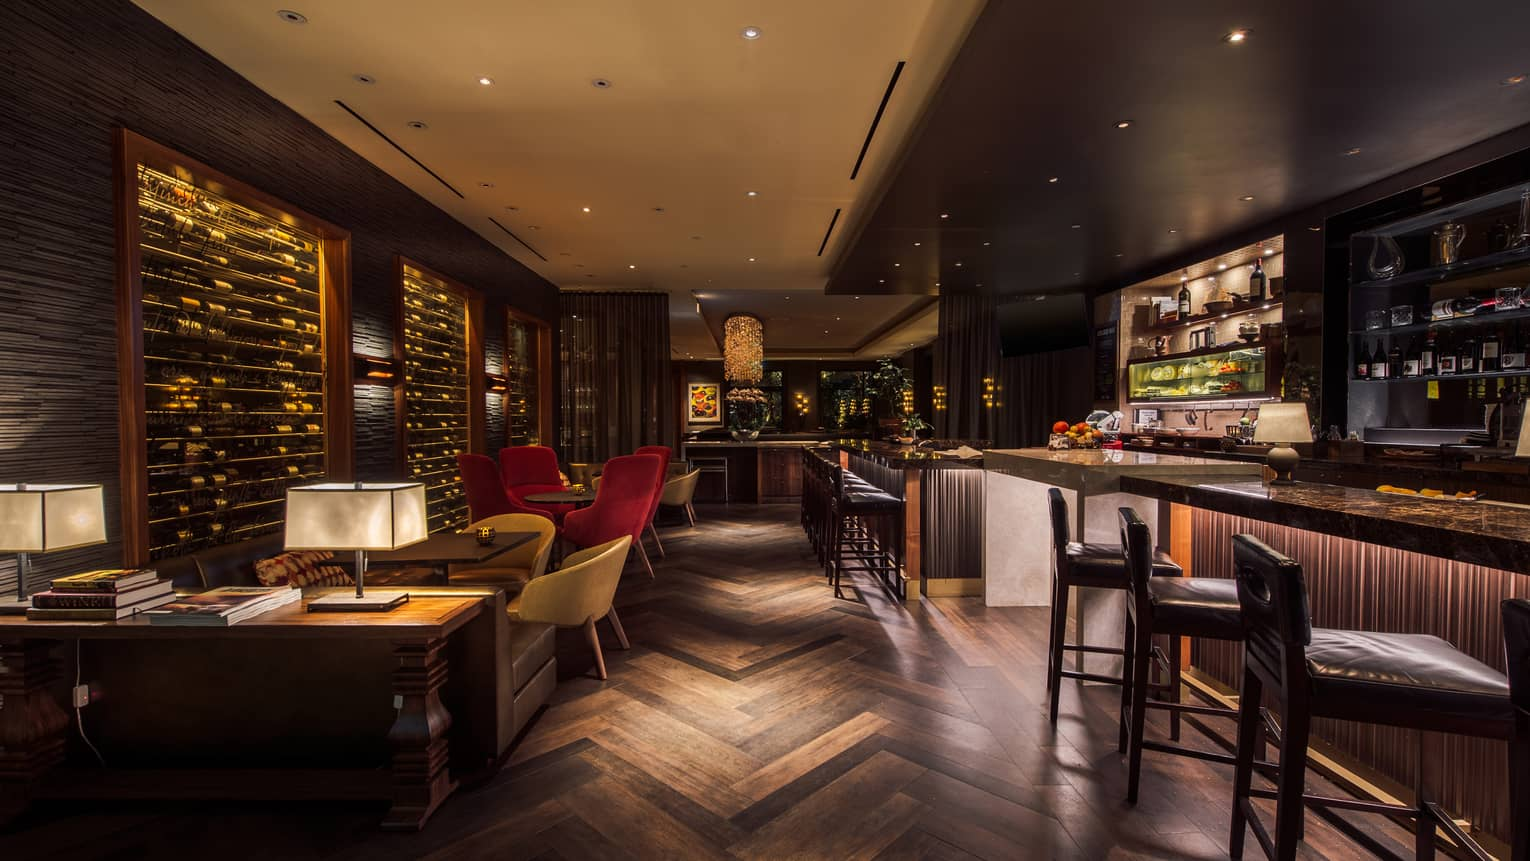 Dimly lit, indoor wine bar with geometric wooden floor, bar, wall of wine bottles